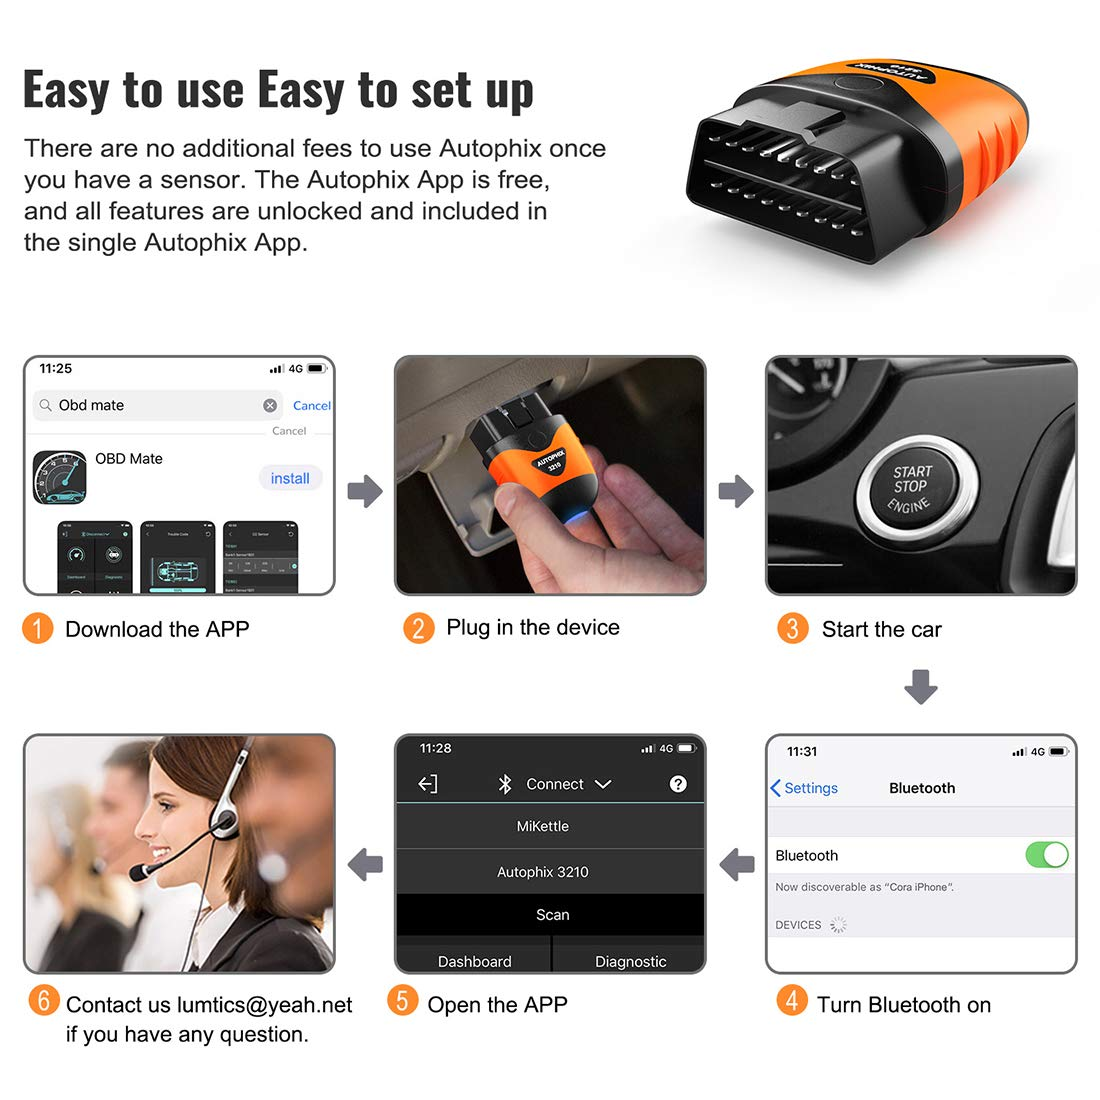 AUTOPHIX 3210 Bluetooth OBD2 Enhanced Car Diagnostic Scanner for iPhone, iPad & Android, Fault Code Reader Plus Battery Tester Exclusive App for Quality-Newest Generation by AUTOPHIX (Image #7)